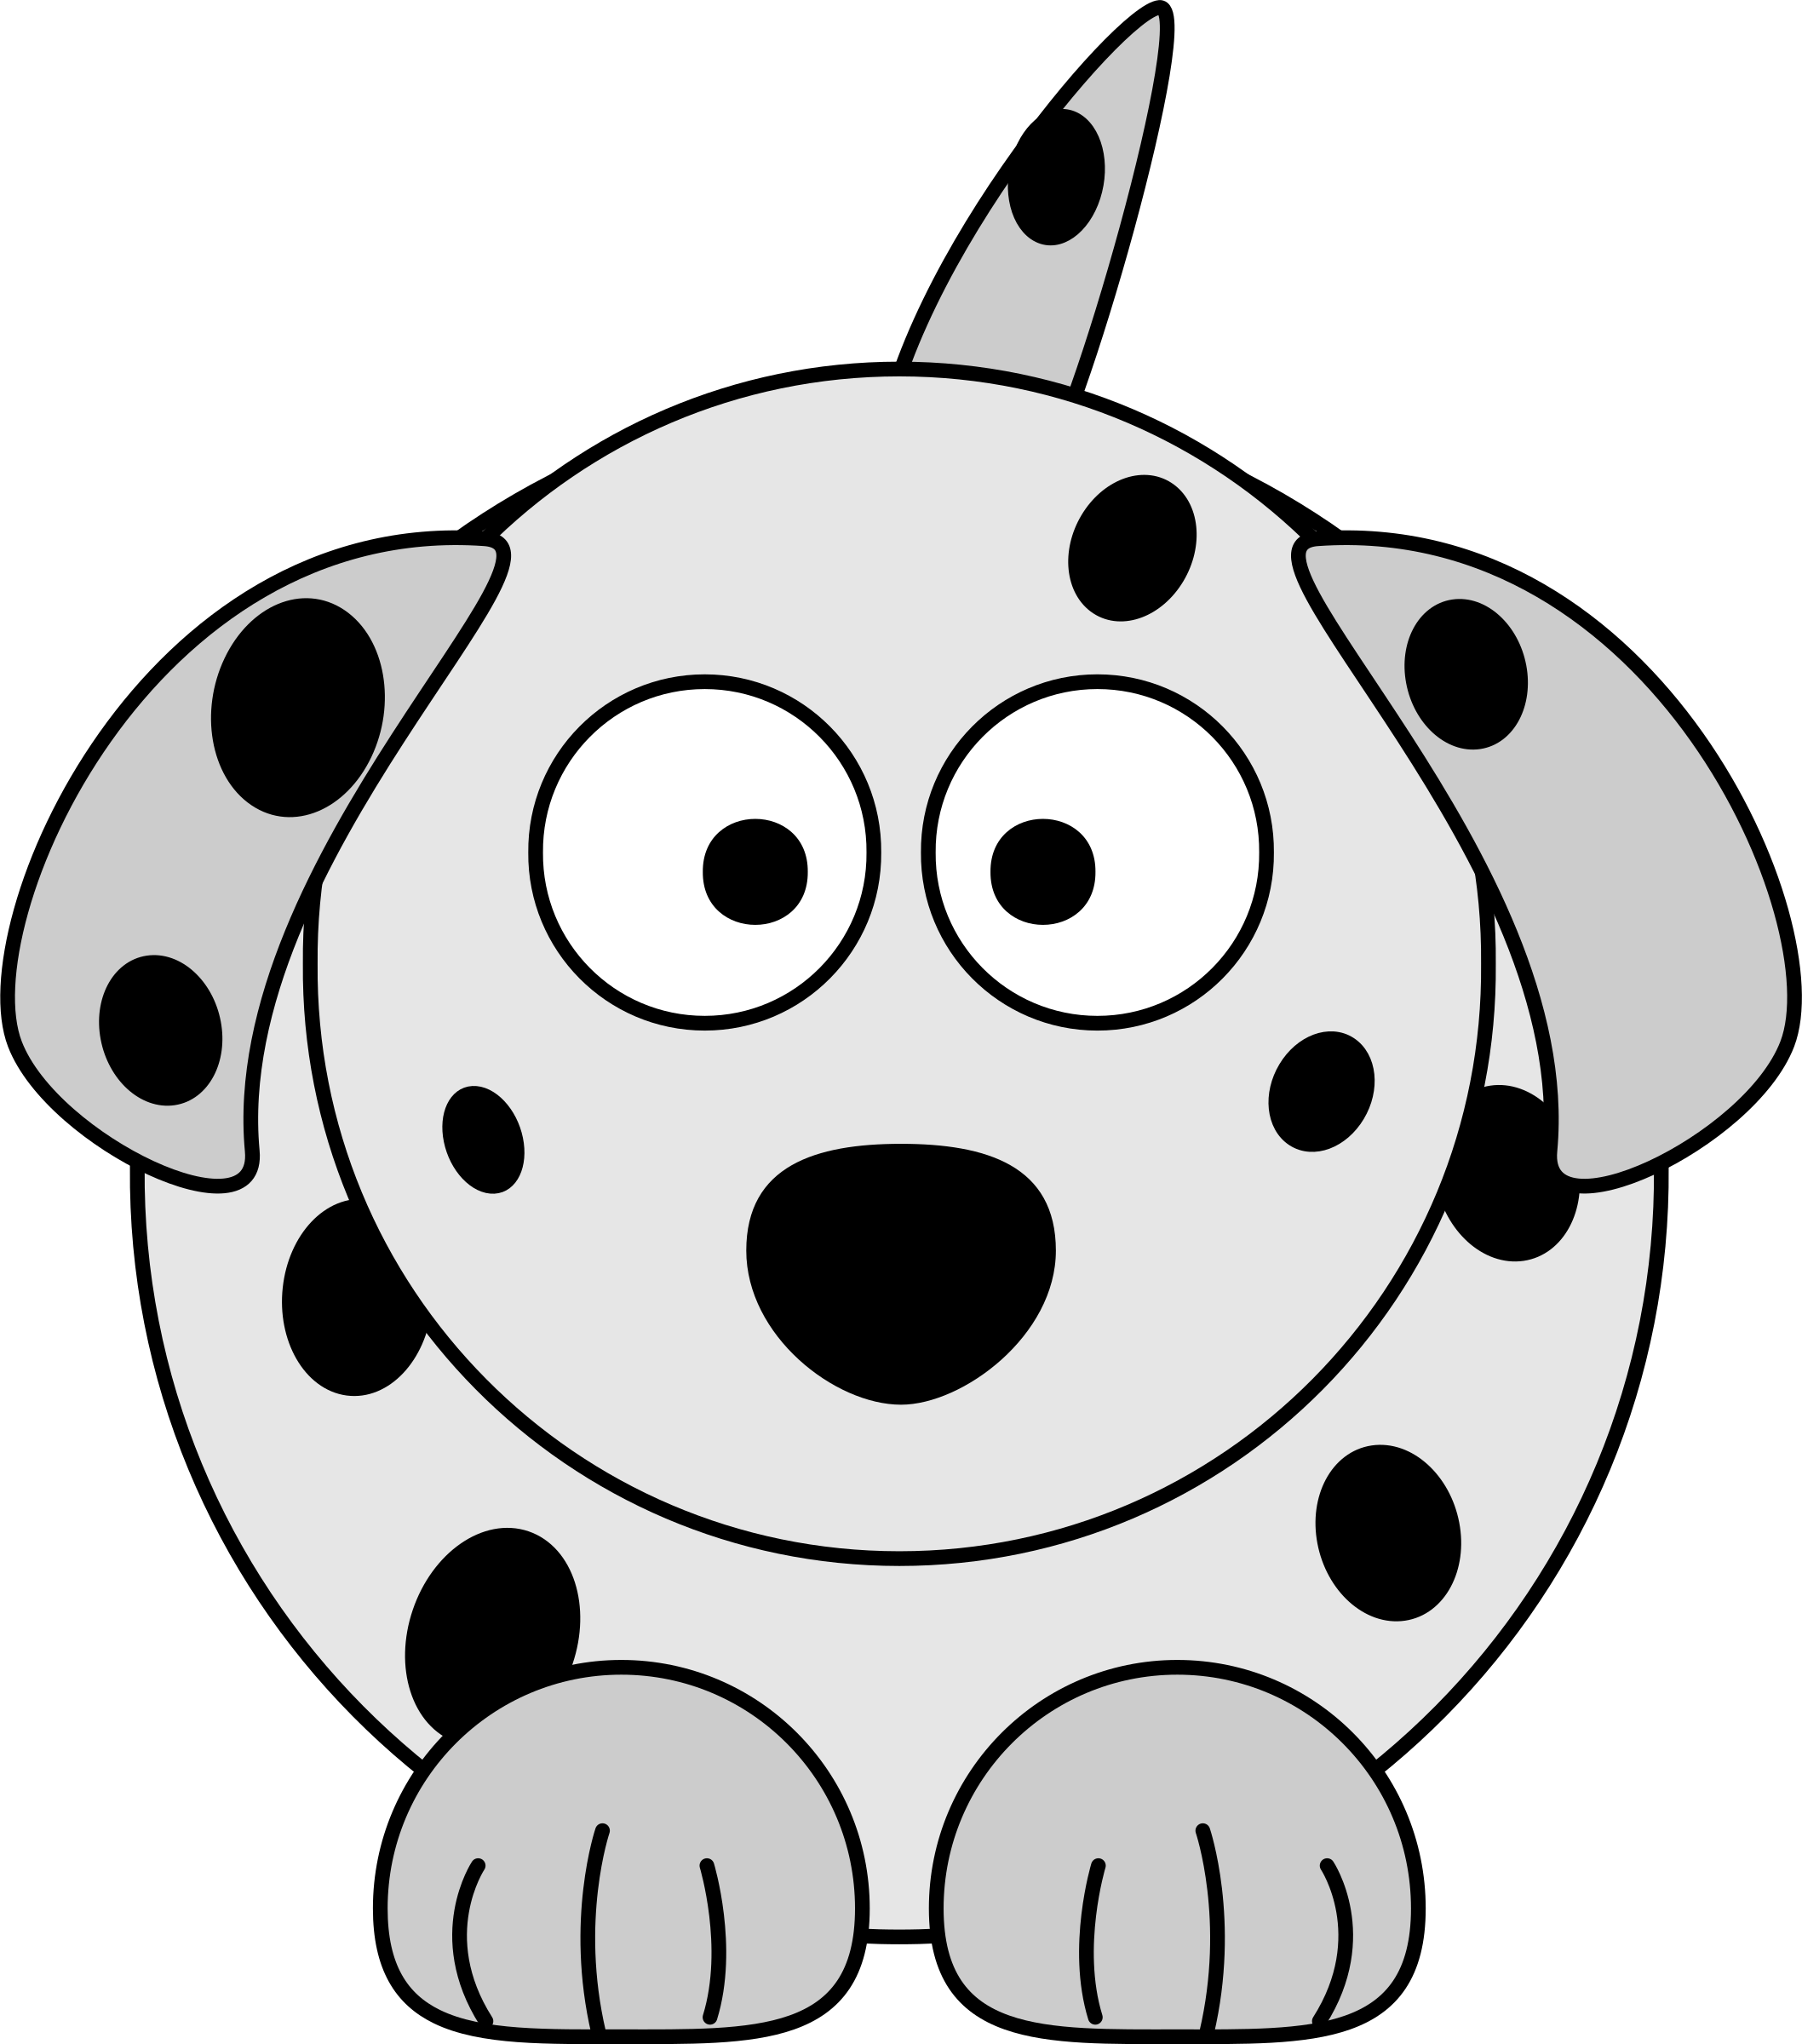 Dog clipart images free stock Clipart - Dalmatian Cartoon Dog free stock